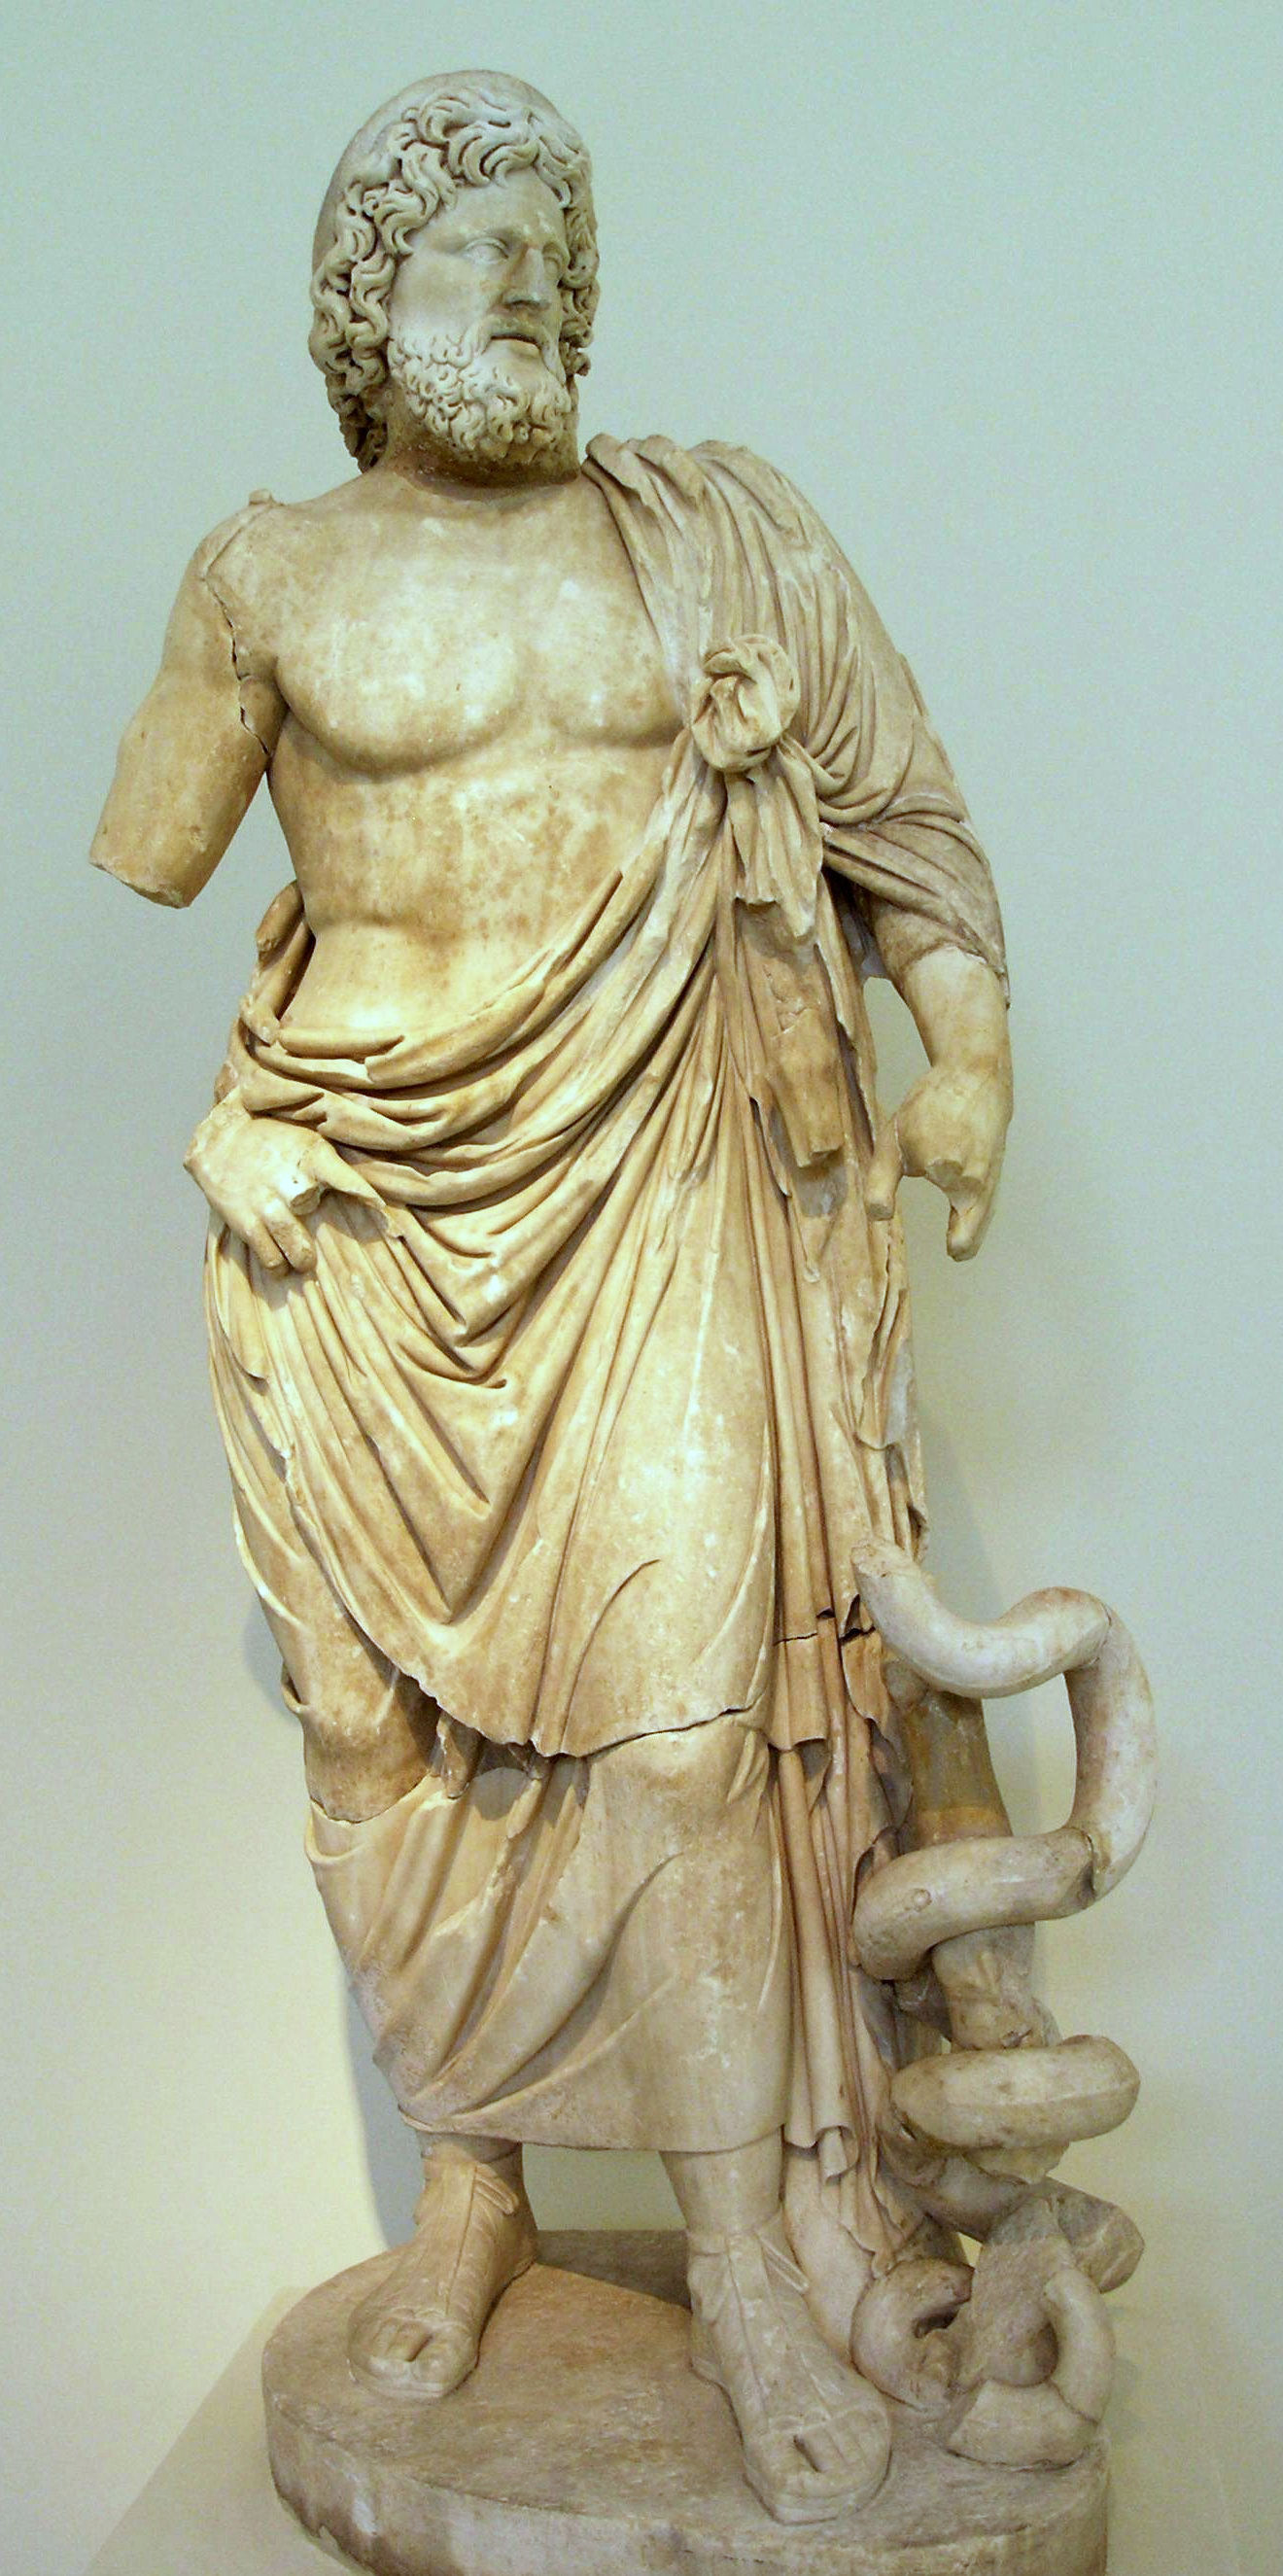 https://upload.wikimedia.org/wikipedia/commons/2/22/NAMA-Asklepios_Epidaure.jpg